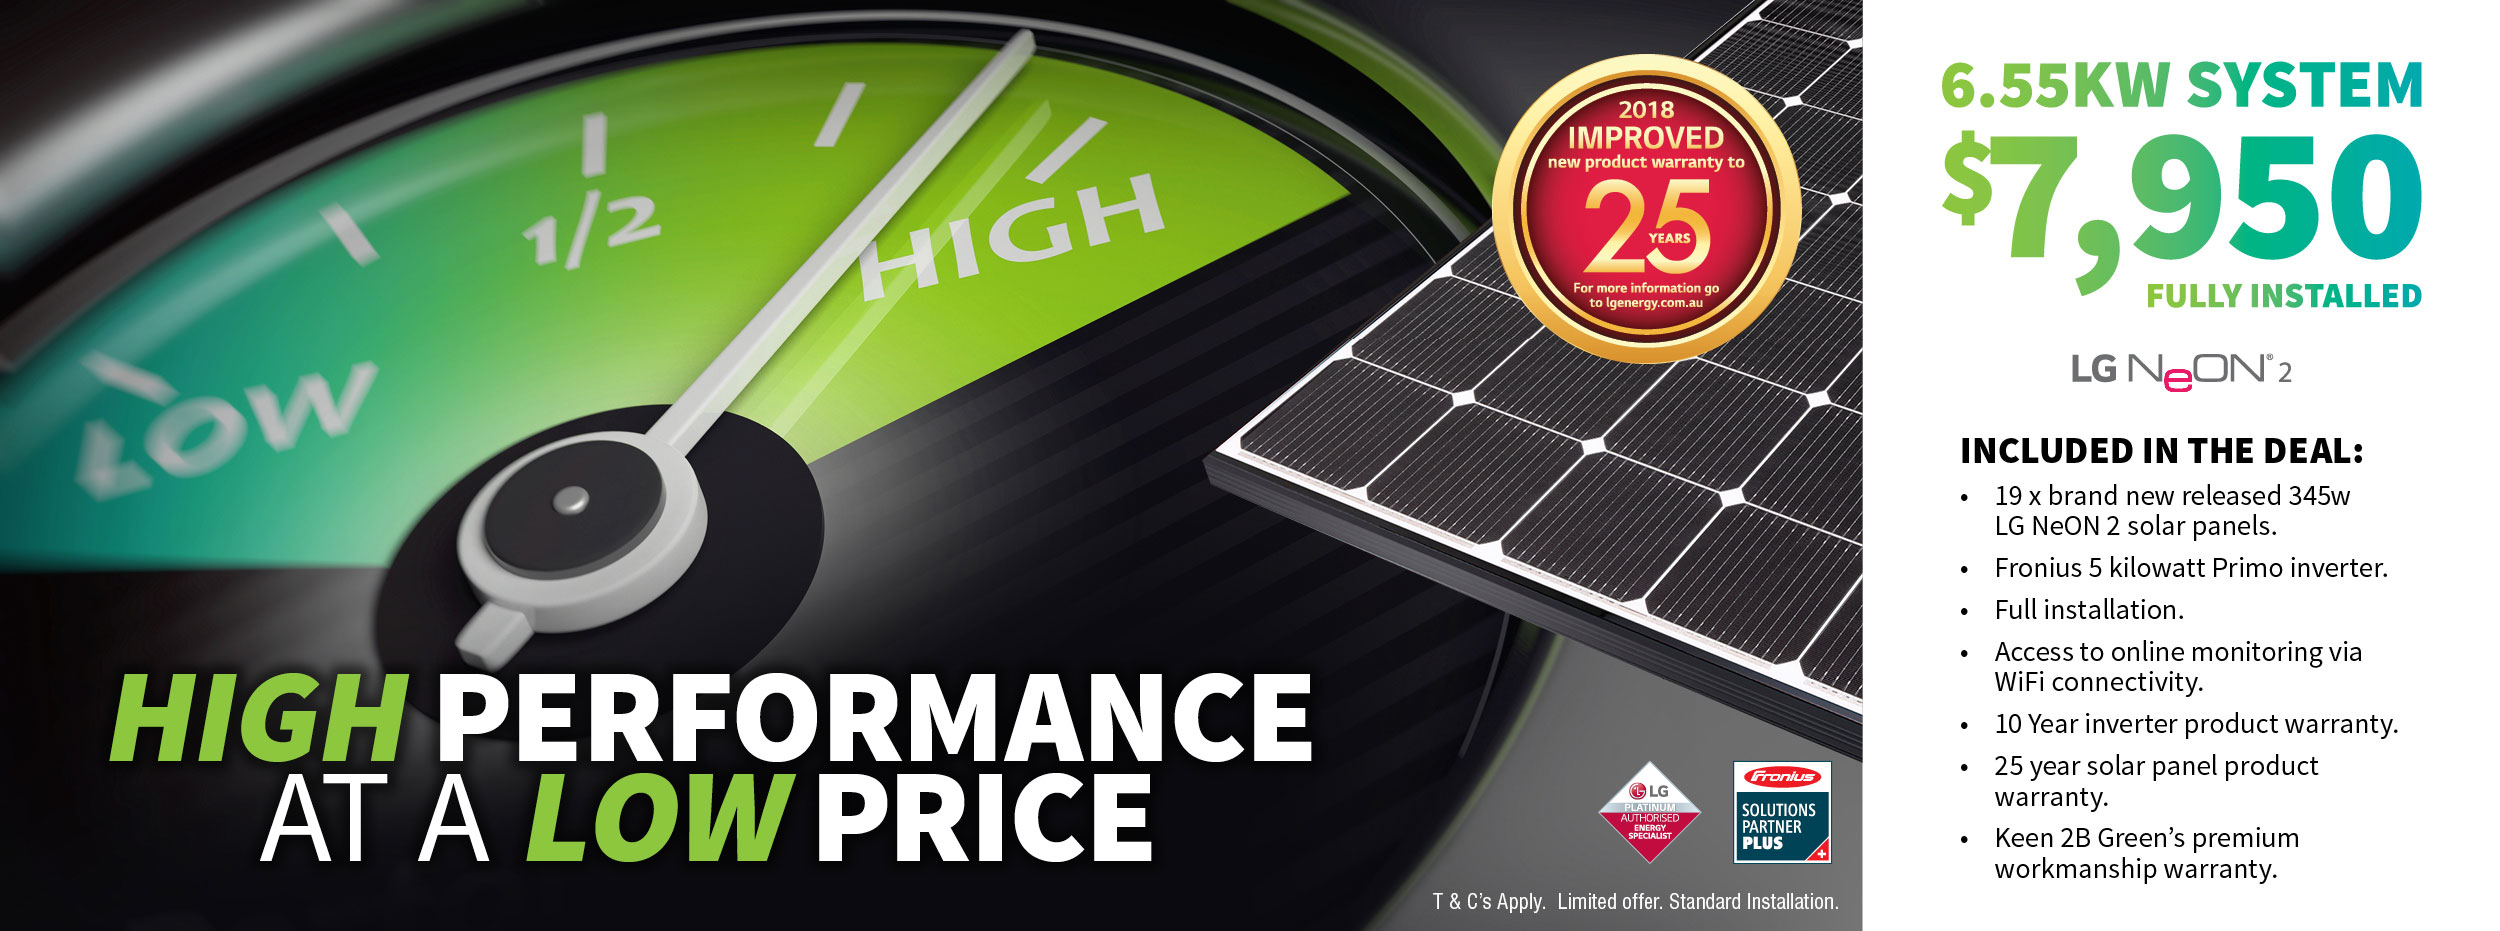 Lg High Performance Solar Panel July Special Keen 2b Green